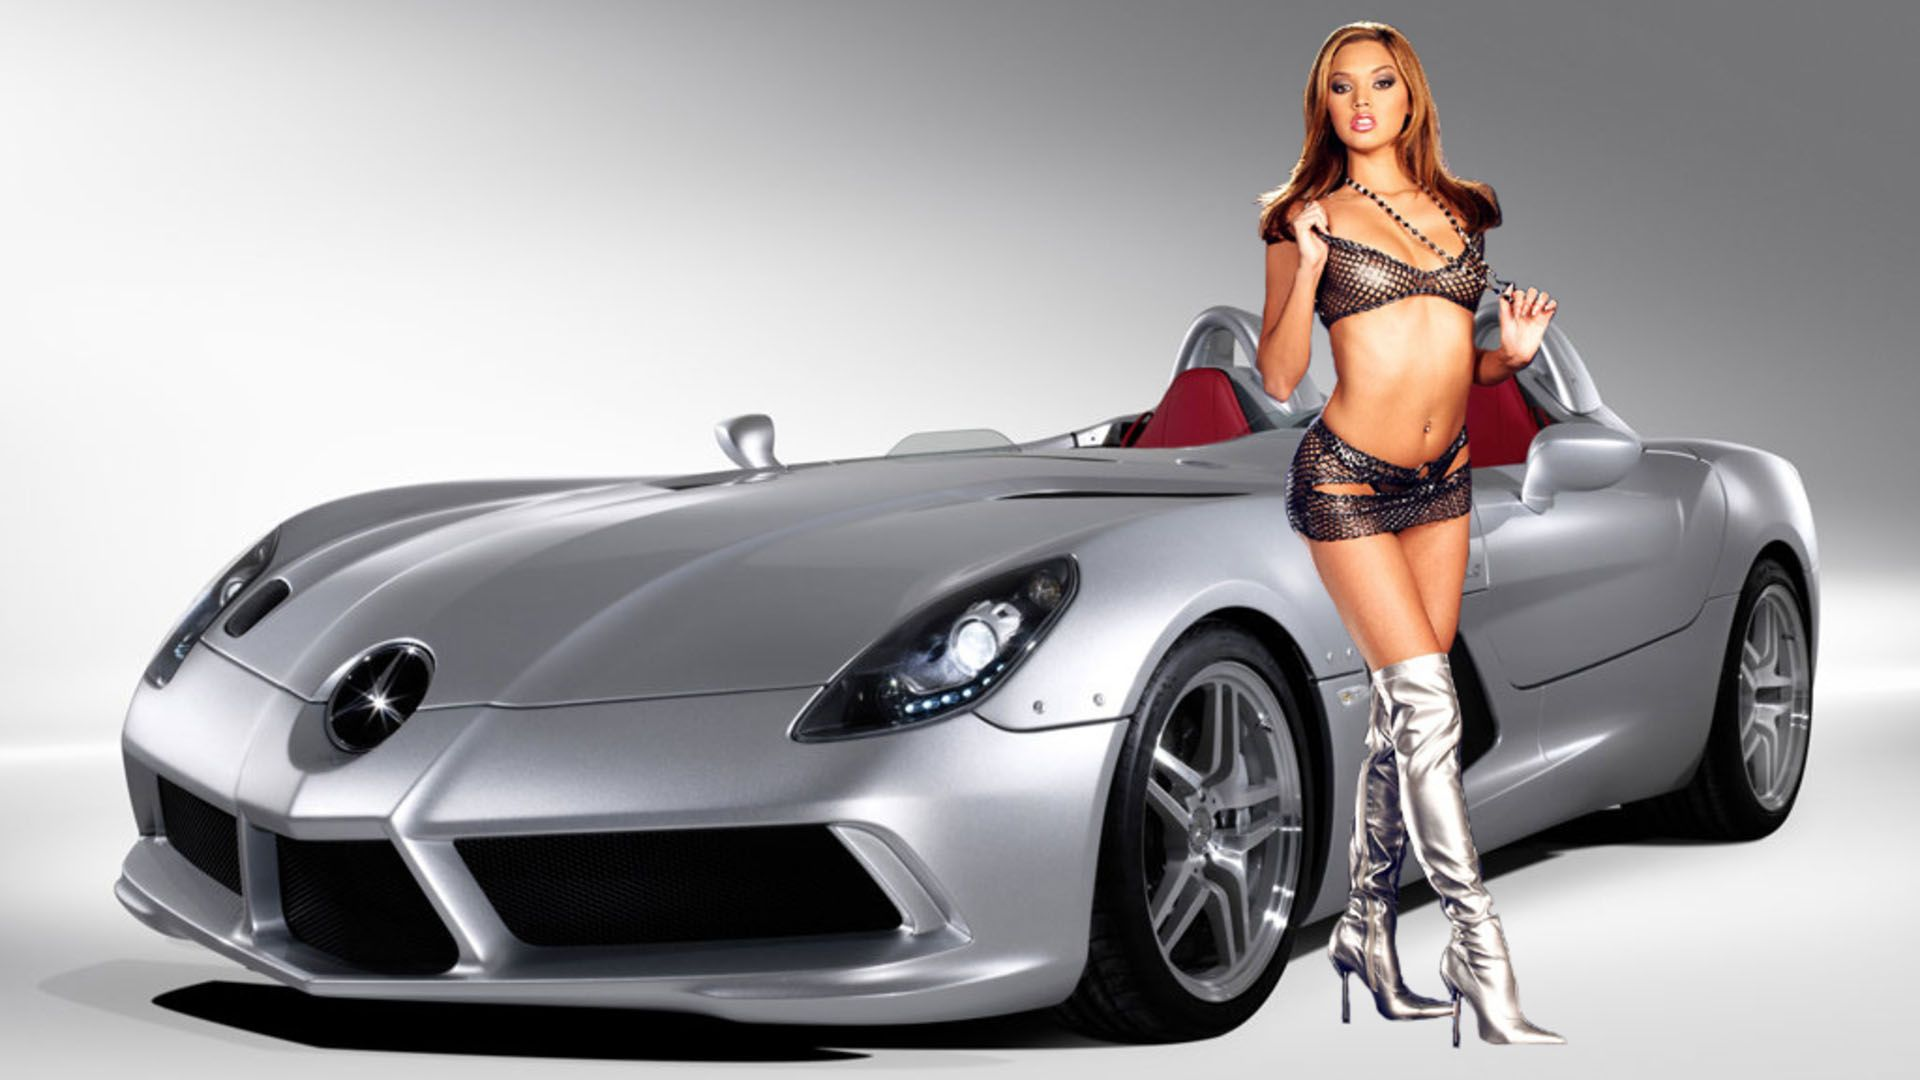 hot sexy models with car hot girl with car wallpaper 26 - Super Cool Cars With Girls